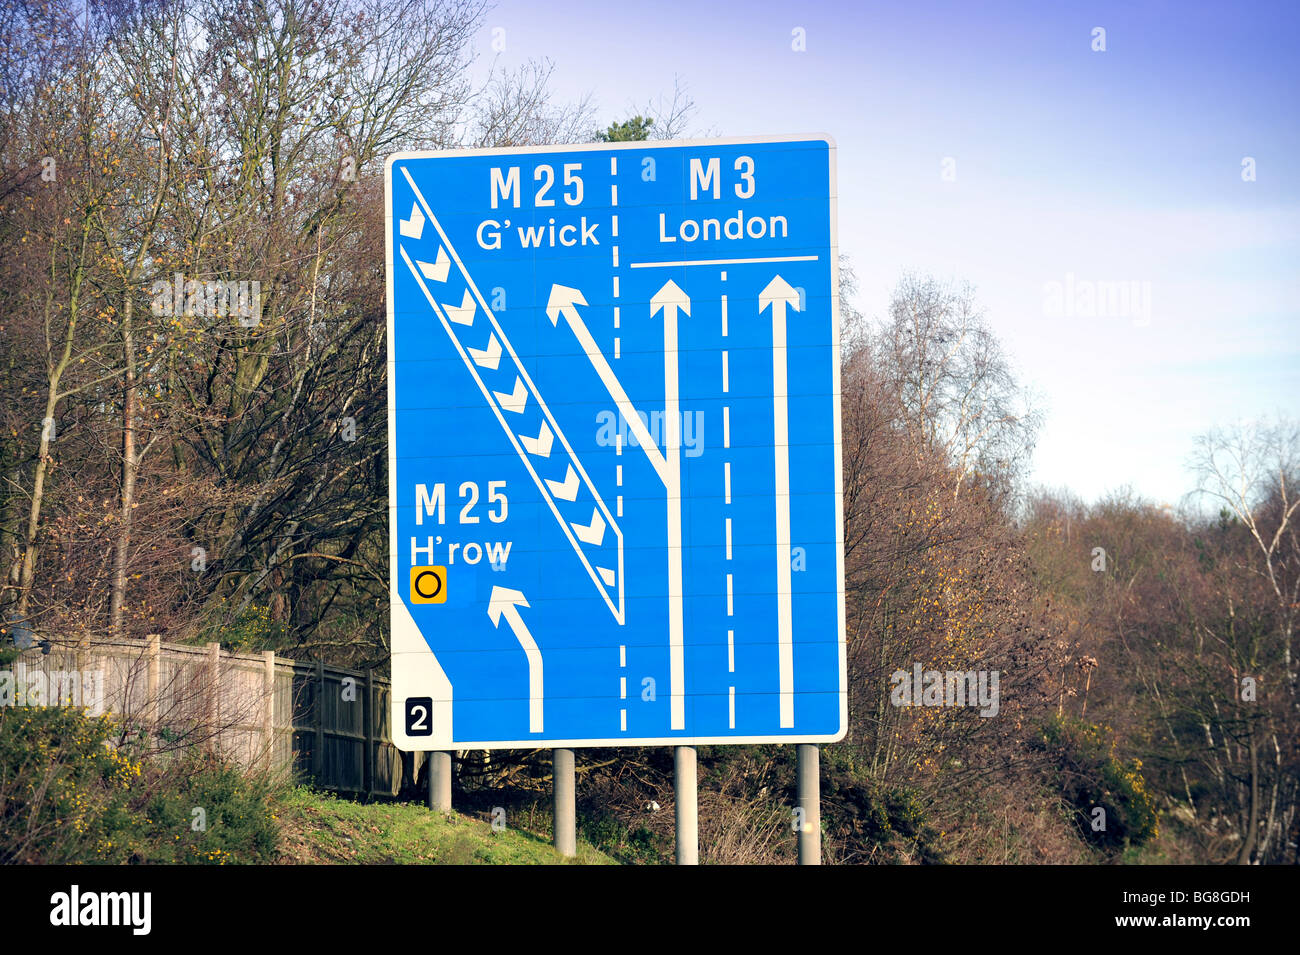 Airport Sighn for Heathrow and Gatwick on the M£ Motorway in Surrey UK - Stock Image